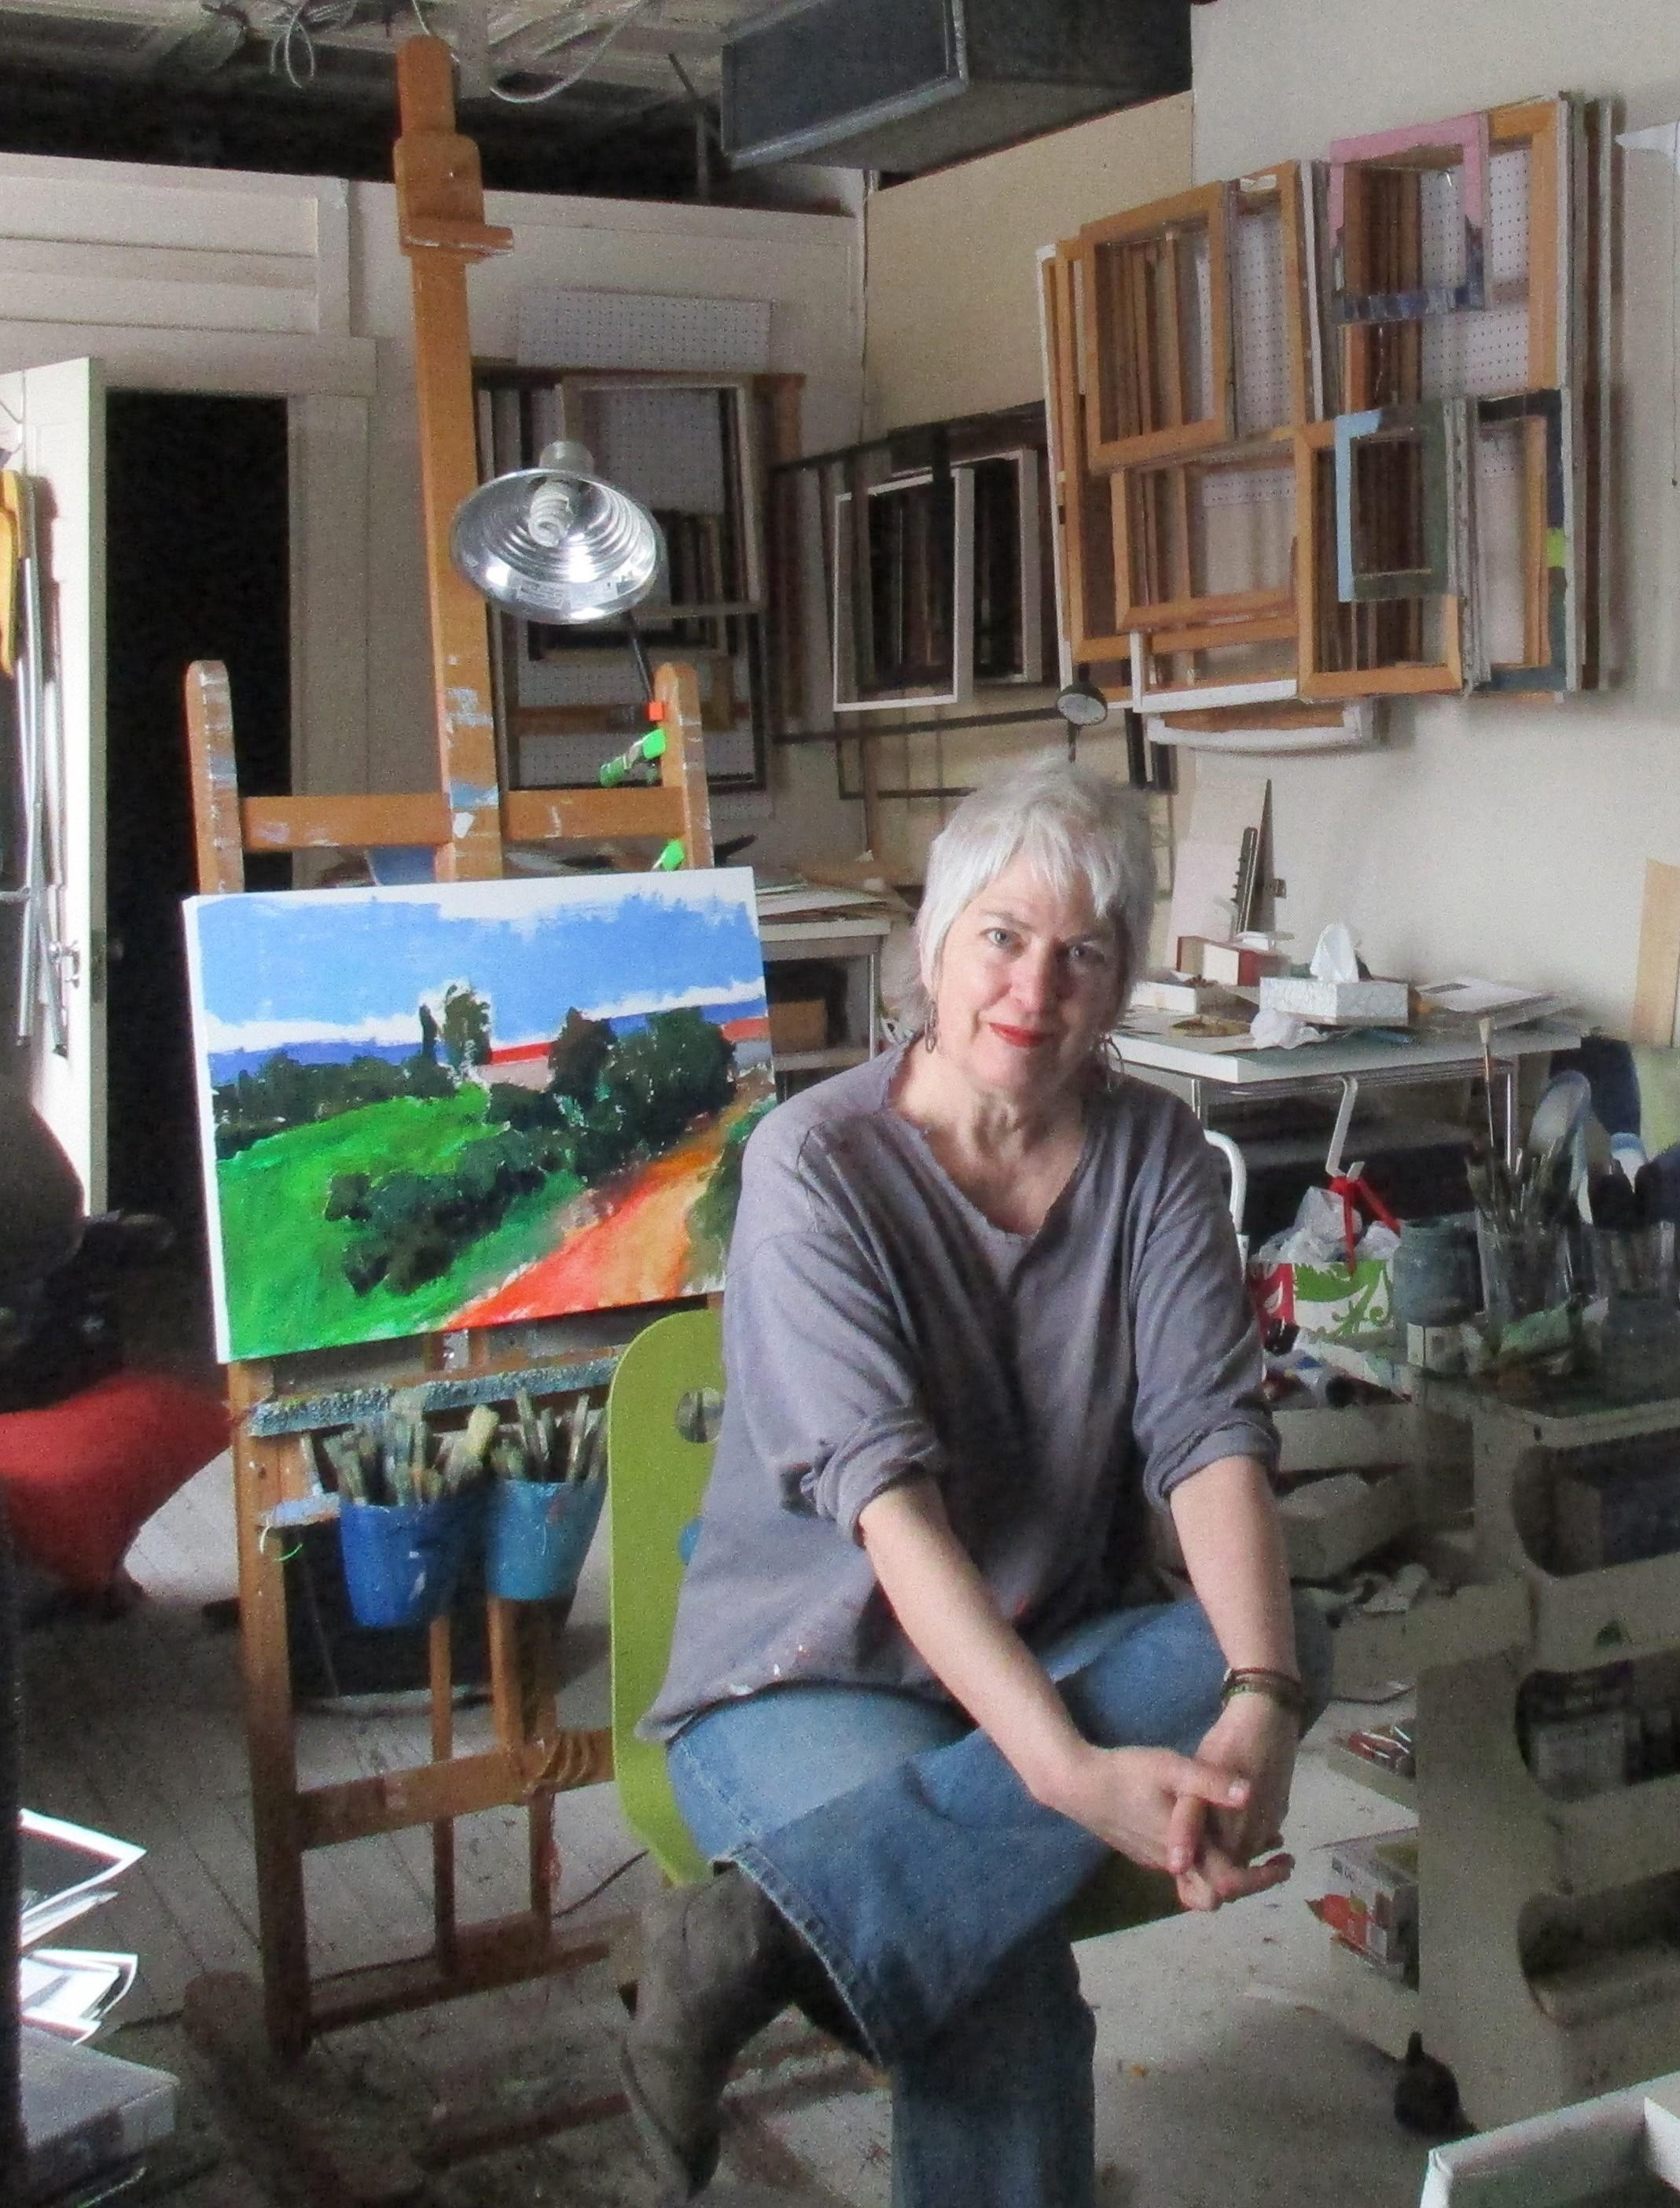 Life is Art; the travels of Suffern artist Janet Dyer